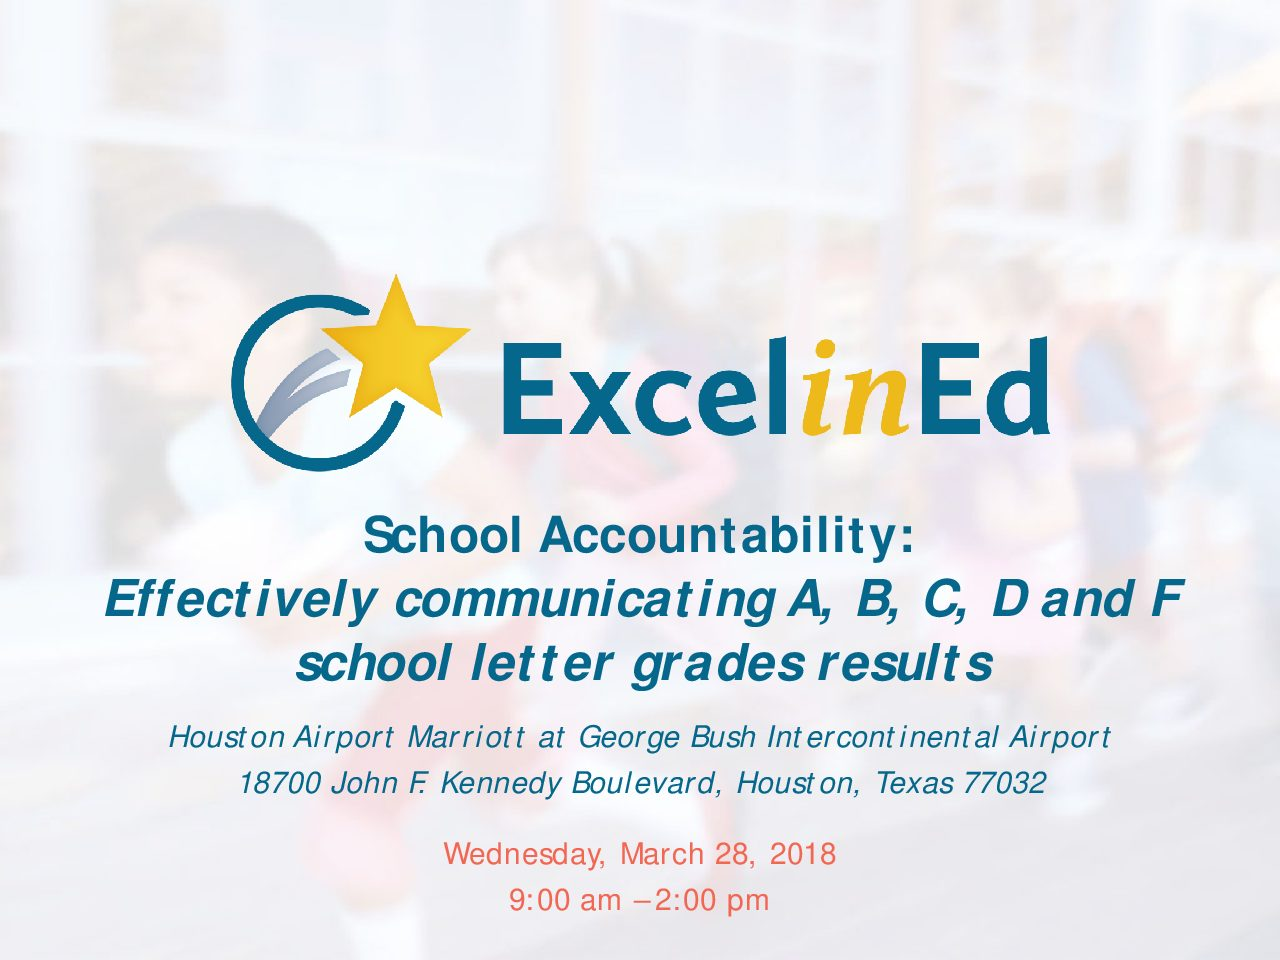 School Accountability Workshop Presentation: Effectively communicating A, B, C, D and F school letter grades results &#8211; March 2018>									 									</a> 									<h5><a href=